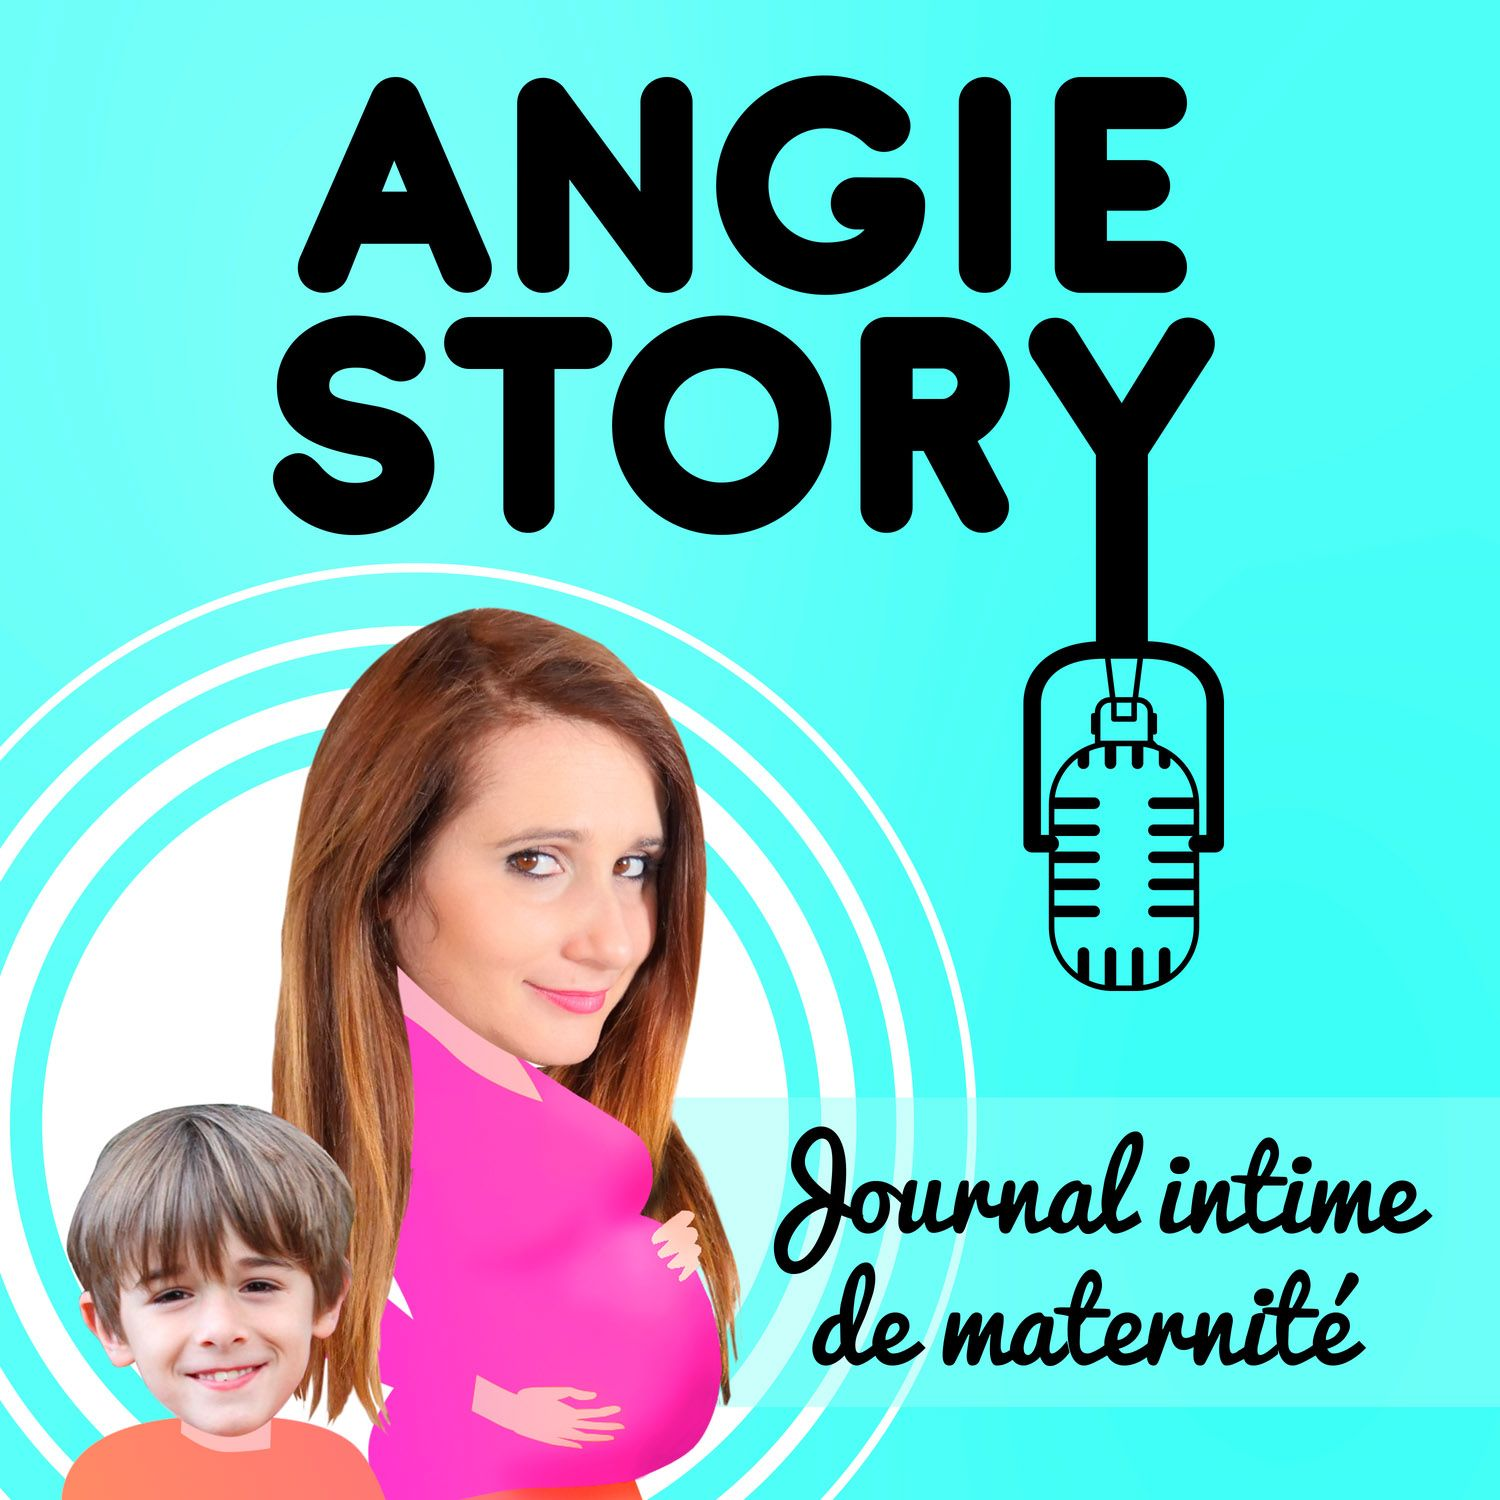 ANGIE STORY